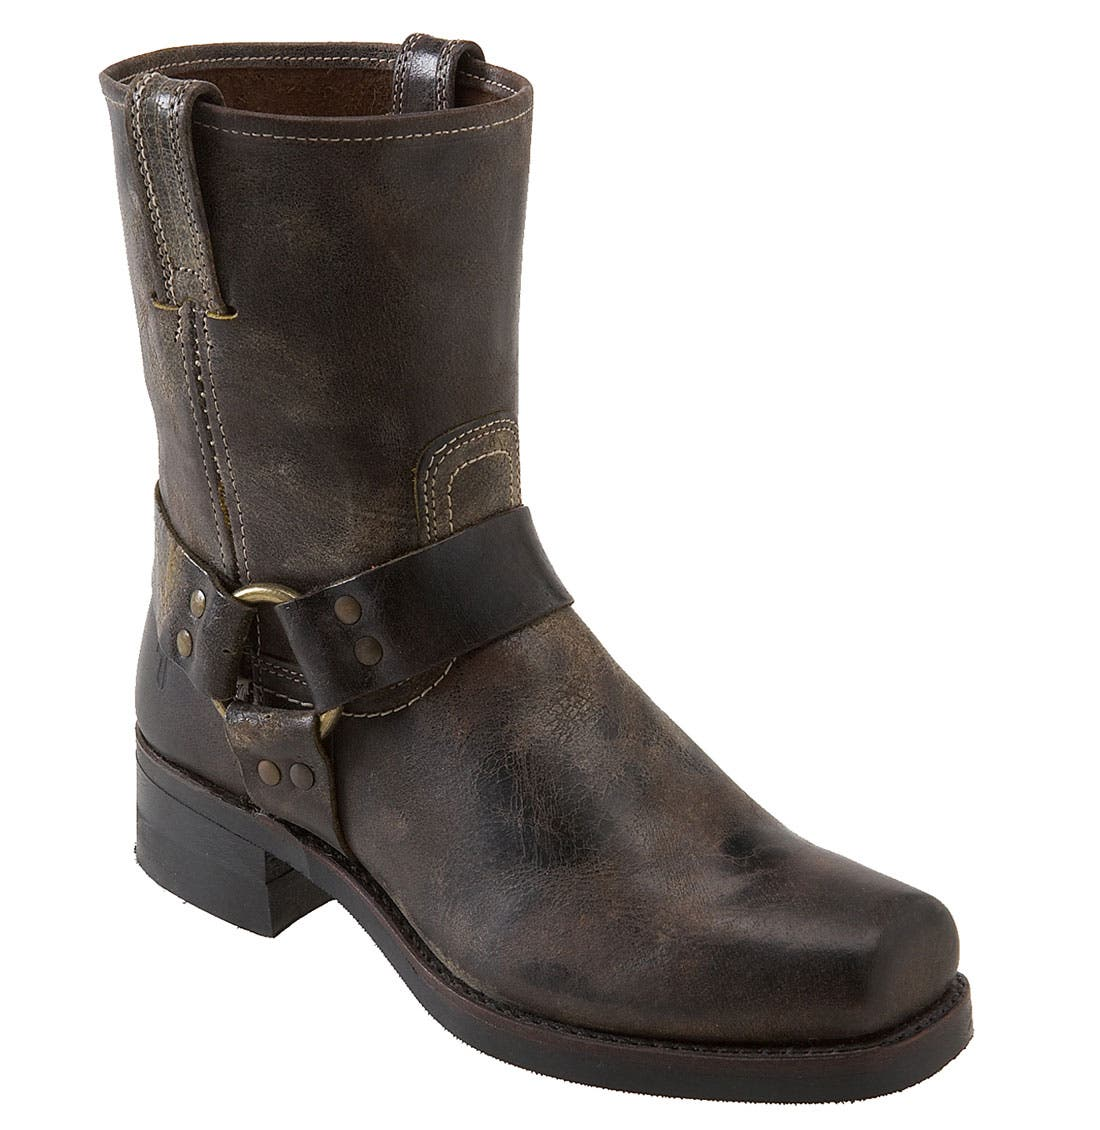 Alternate Image 1 Selected - Frye 'Harness 8R Antique Vintage' Boot